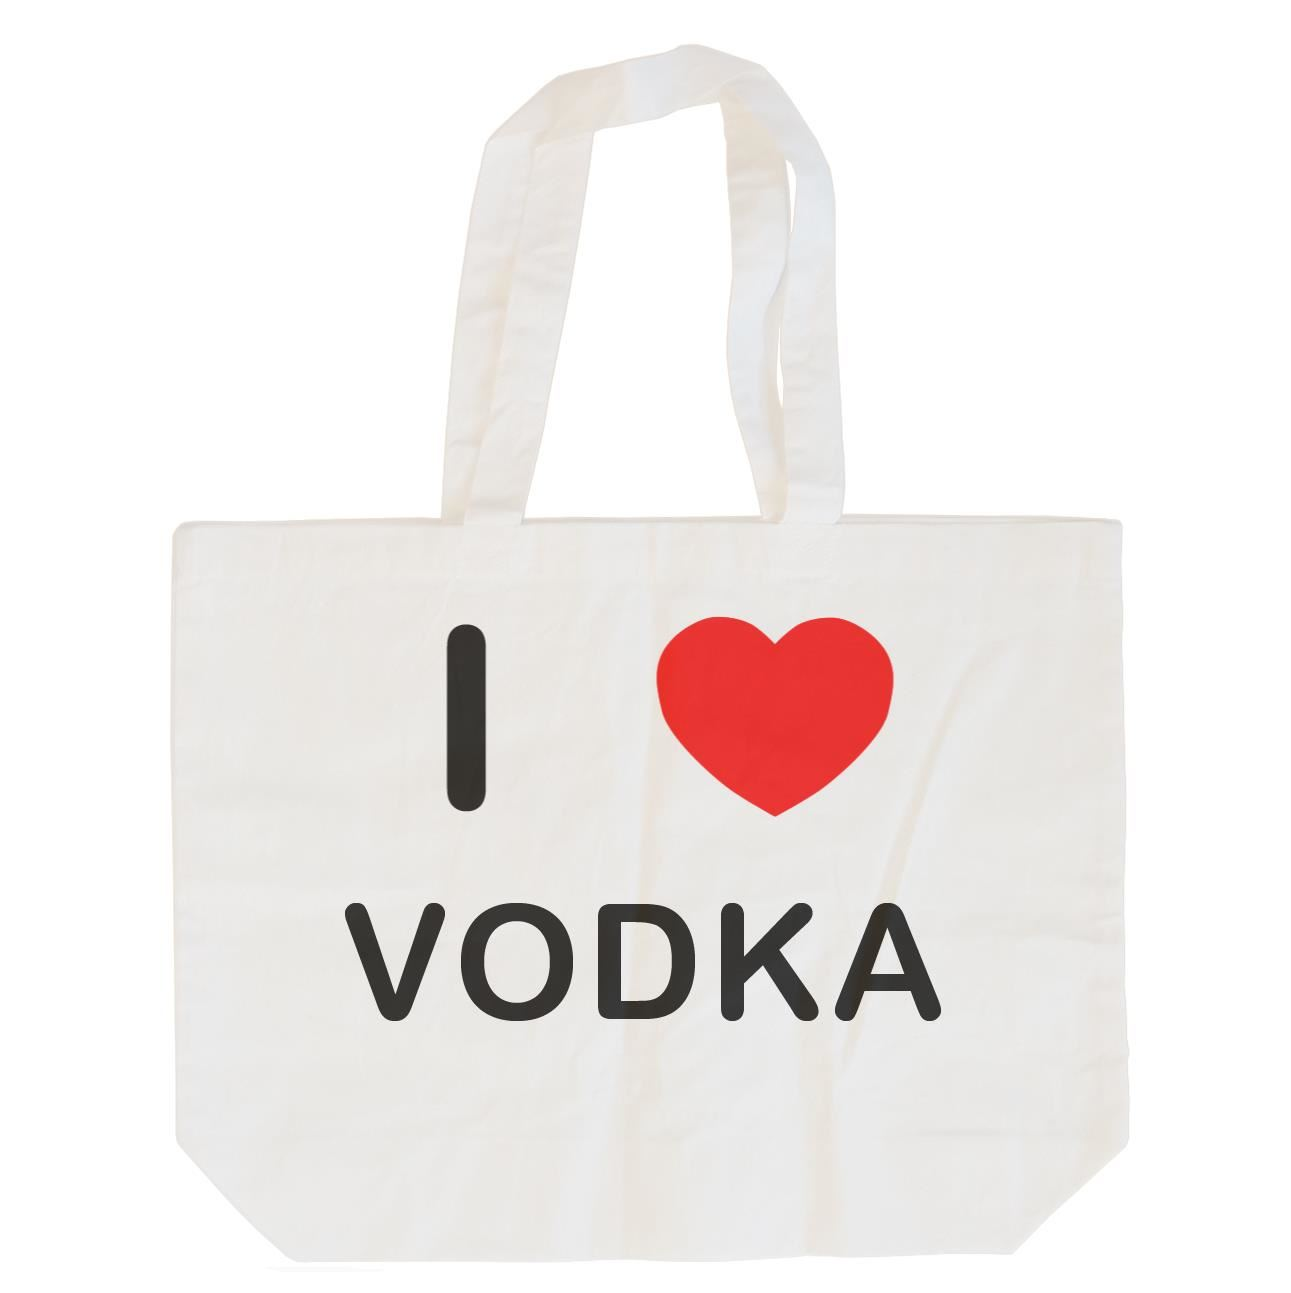 I Love Vodka - Cotton Bag | Size choice Tote, Shopper or Sling